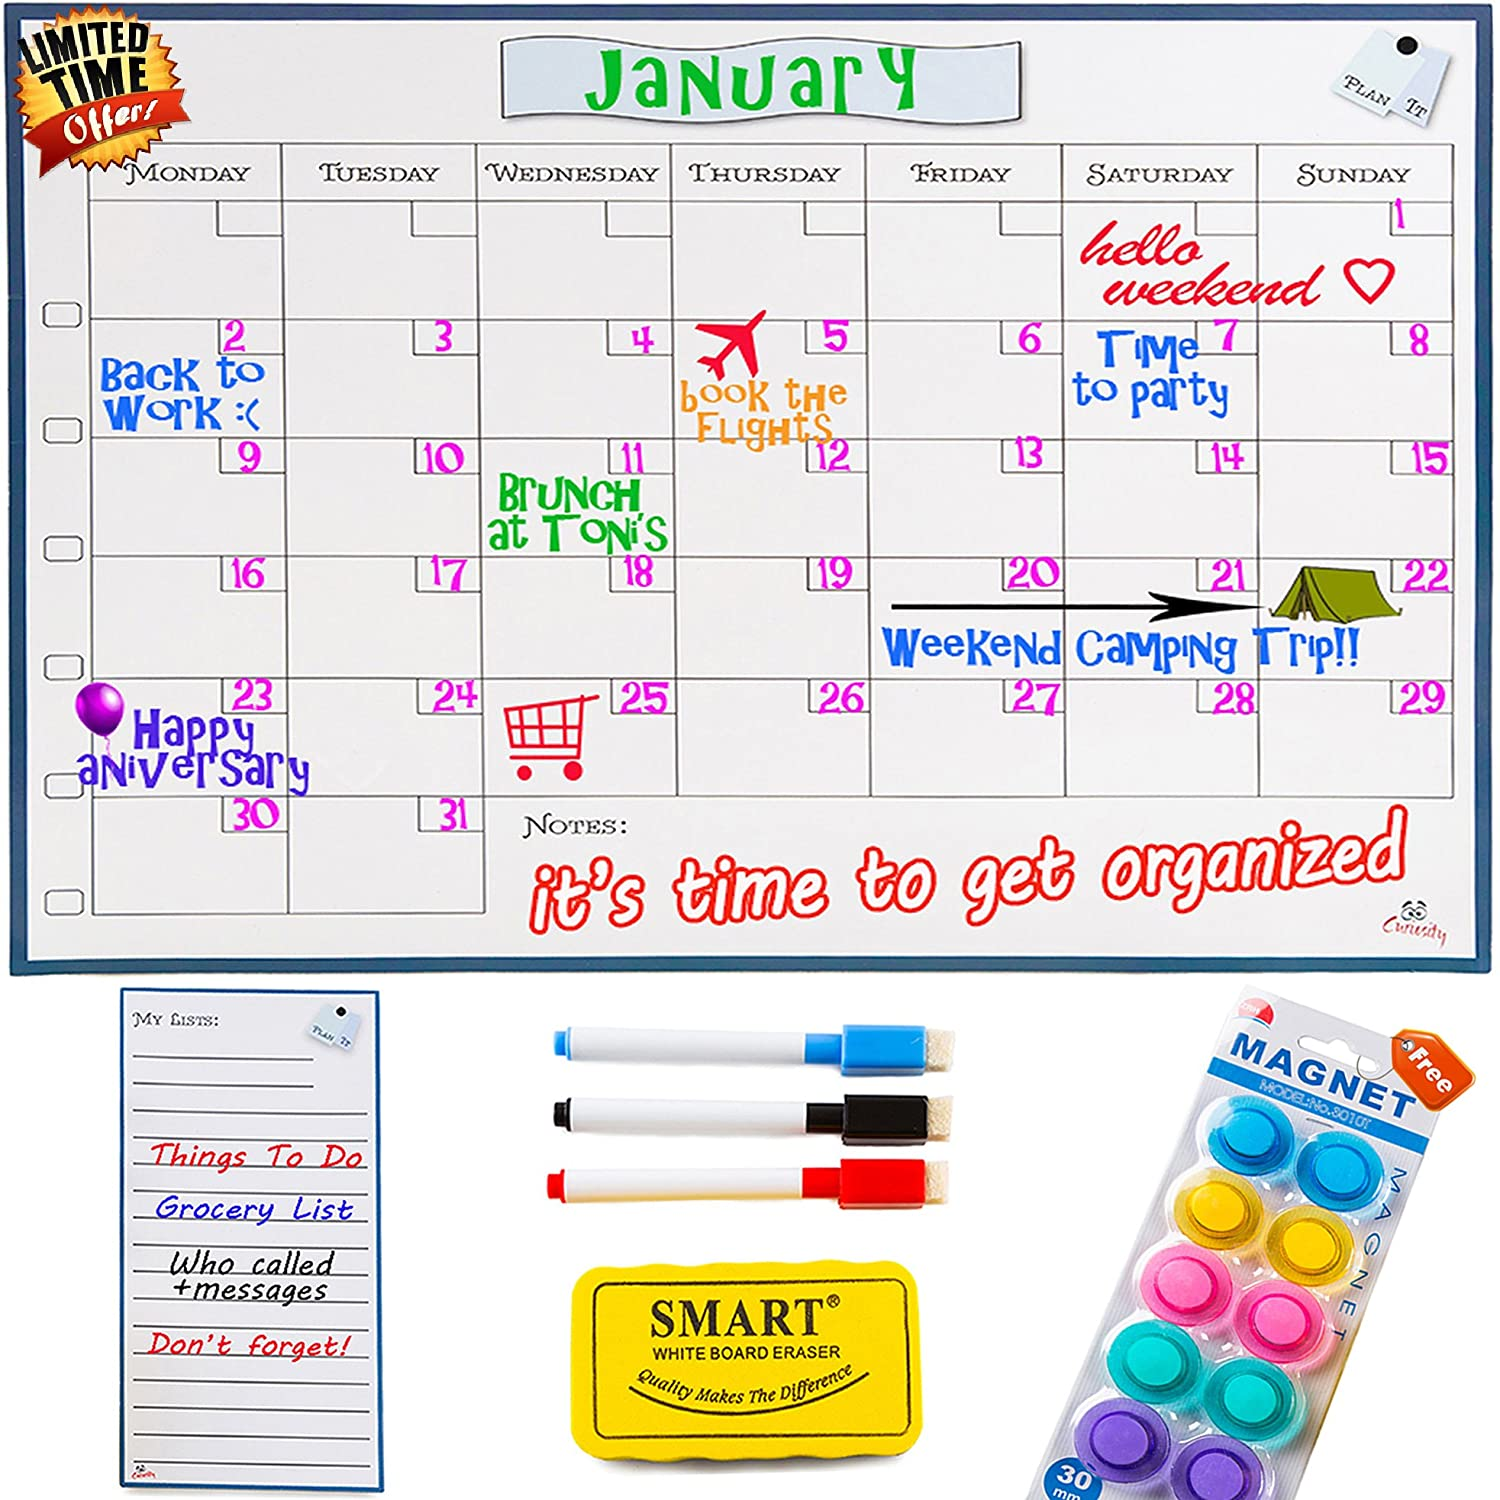 Monday to Sunday Dry Erase Magnetic Calendar Whiteboard - 1612 Monthly Refrigerator Calendar Board - INCLUDES Magnetic My Lists Pad, Erasable Markers & Eraser, BONUS Magnetic Pins by Curiosity